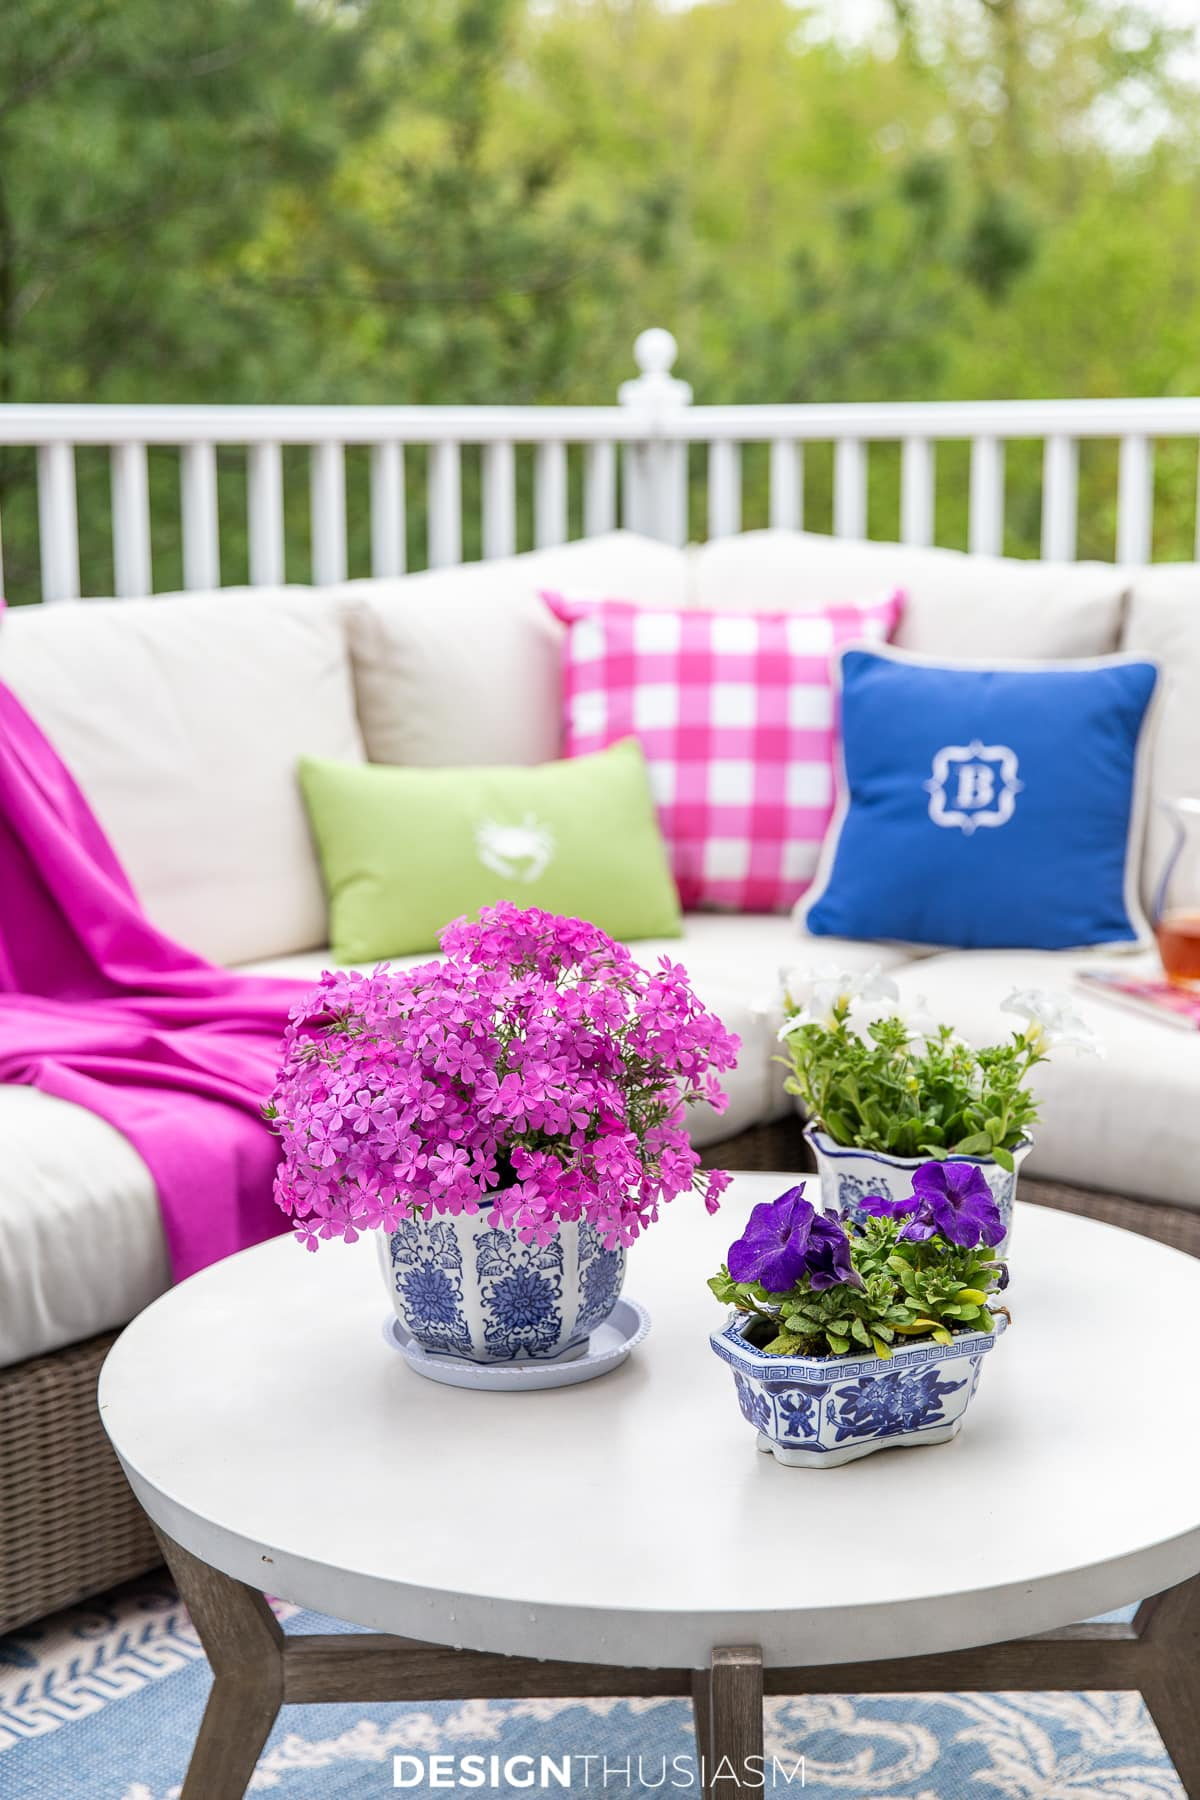 Patio Decor Ideas: Updating the Deck Decor with a New Palette